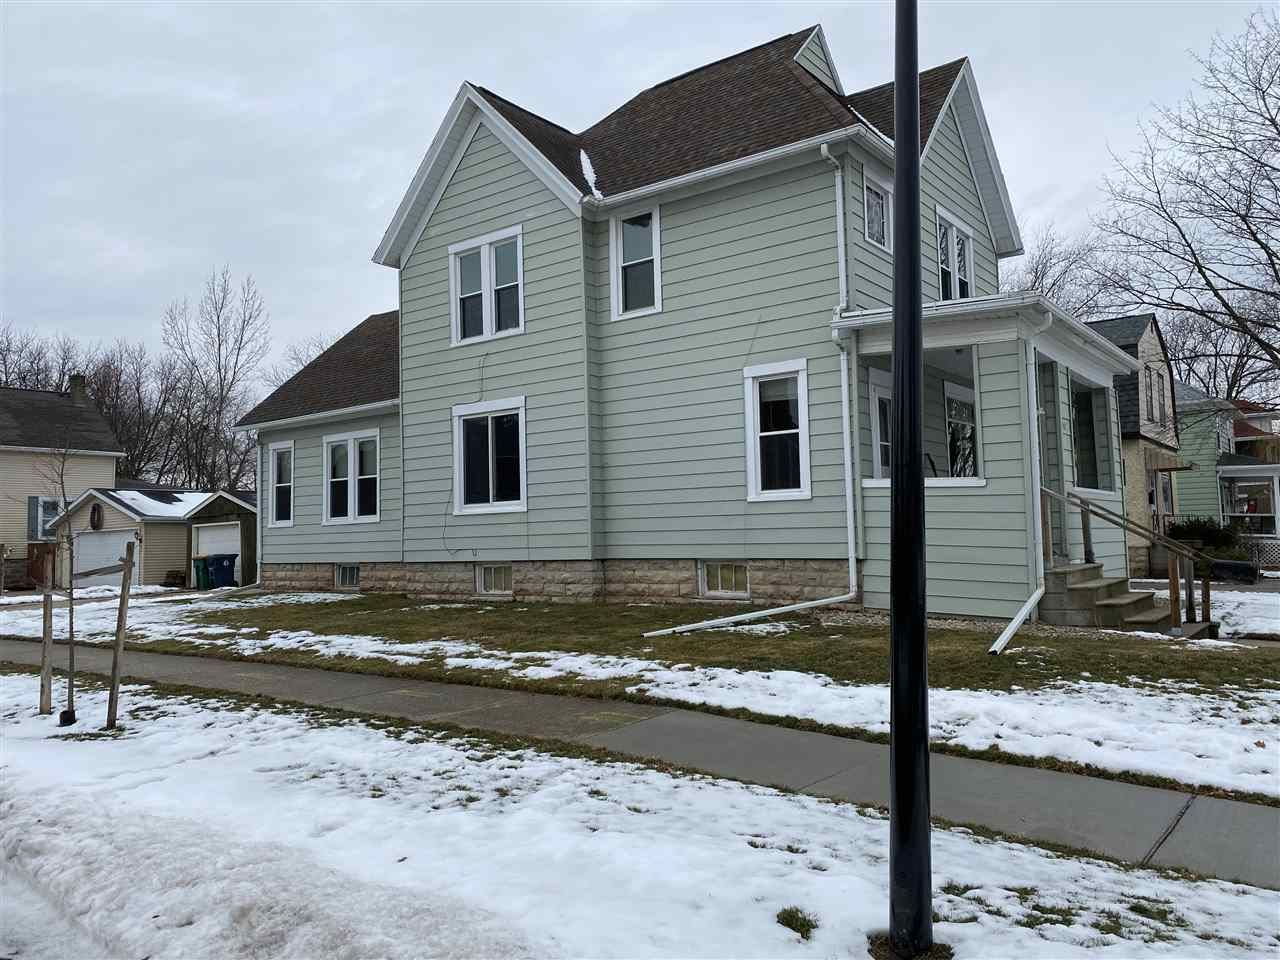 40 E MC WILLIAMS Street, Fond du Lac, WI 54935 - MLS#: 50222970